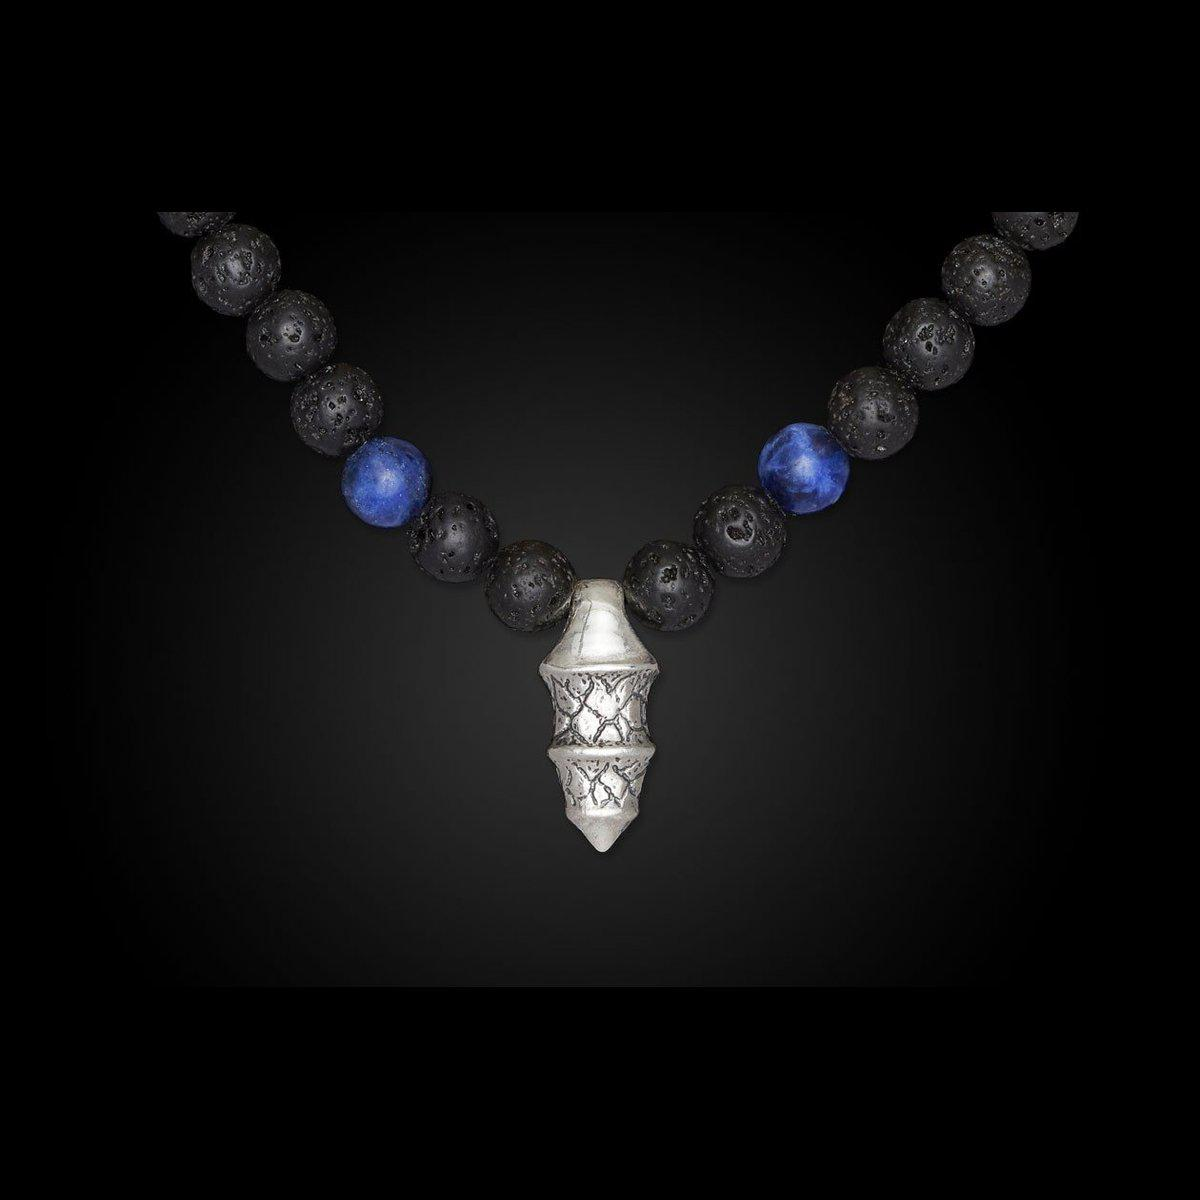 Men's Sodalite Elan Necklace - P34 SOD-William Henry-Renee Taylor Gallery